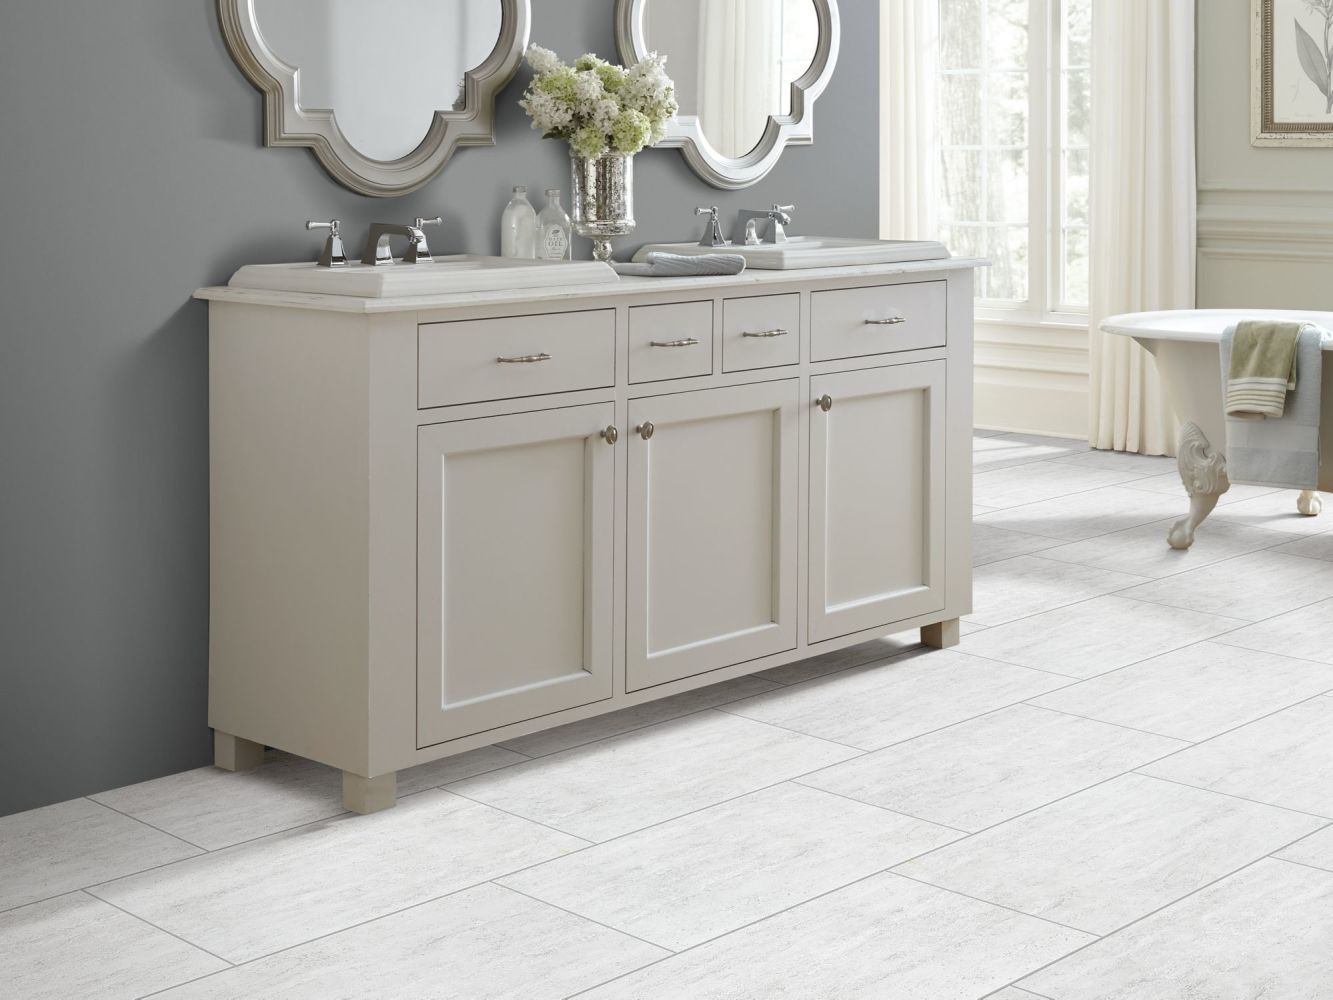 Shaw Floors Home Fn Gold Ceramic Travertino 18×18 Light Grey 00150_TGH15